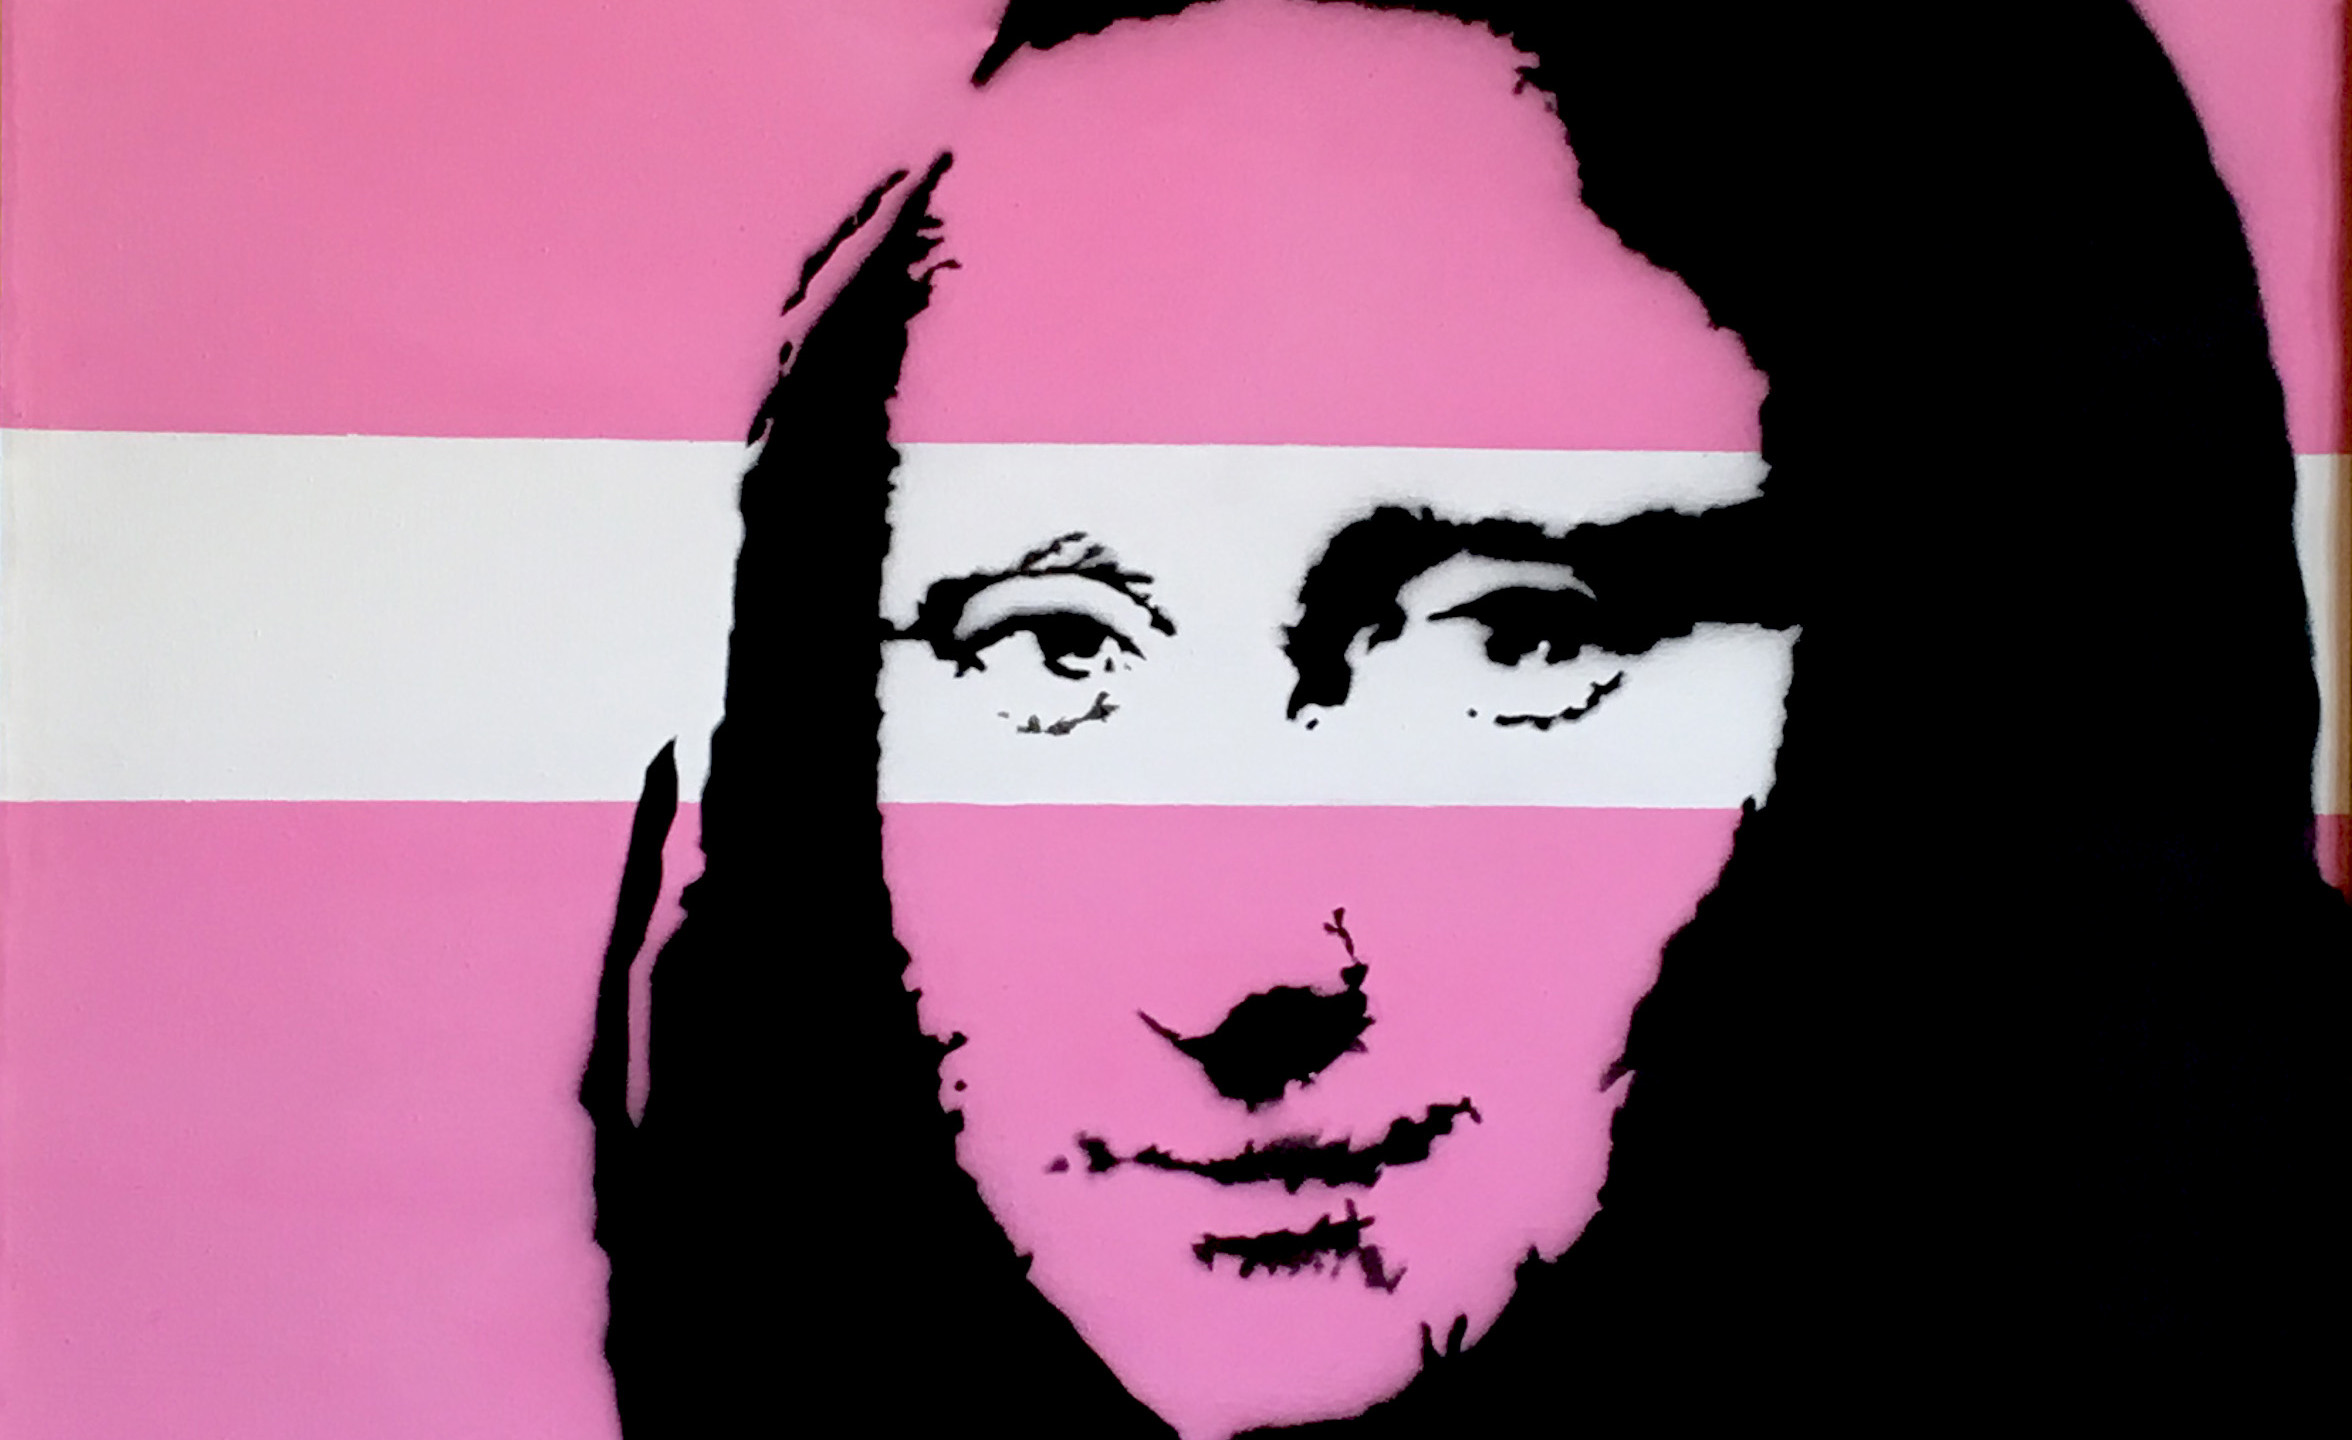 Banksy's Mona Lisa in pink that you see here is a little different. This stenciled canvas is like a mash-up of two different artists' work the classic image of Leonardo da Vinci combined with the pop art style of Andy Warhol. There is also another version of this Mona Lisa, although it is in bright green.